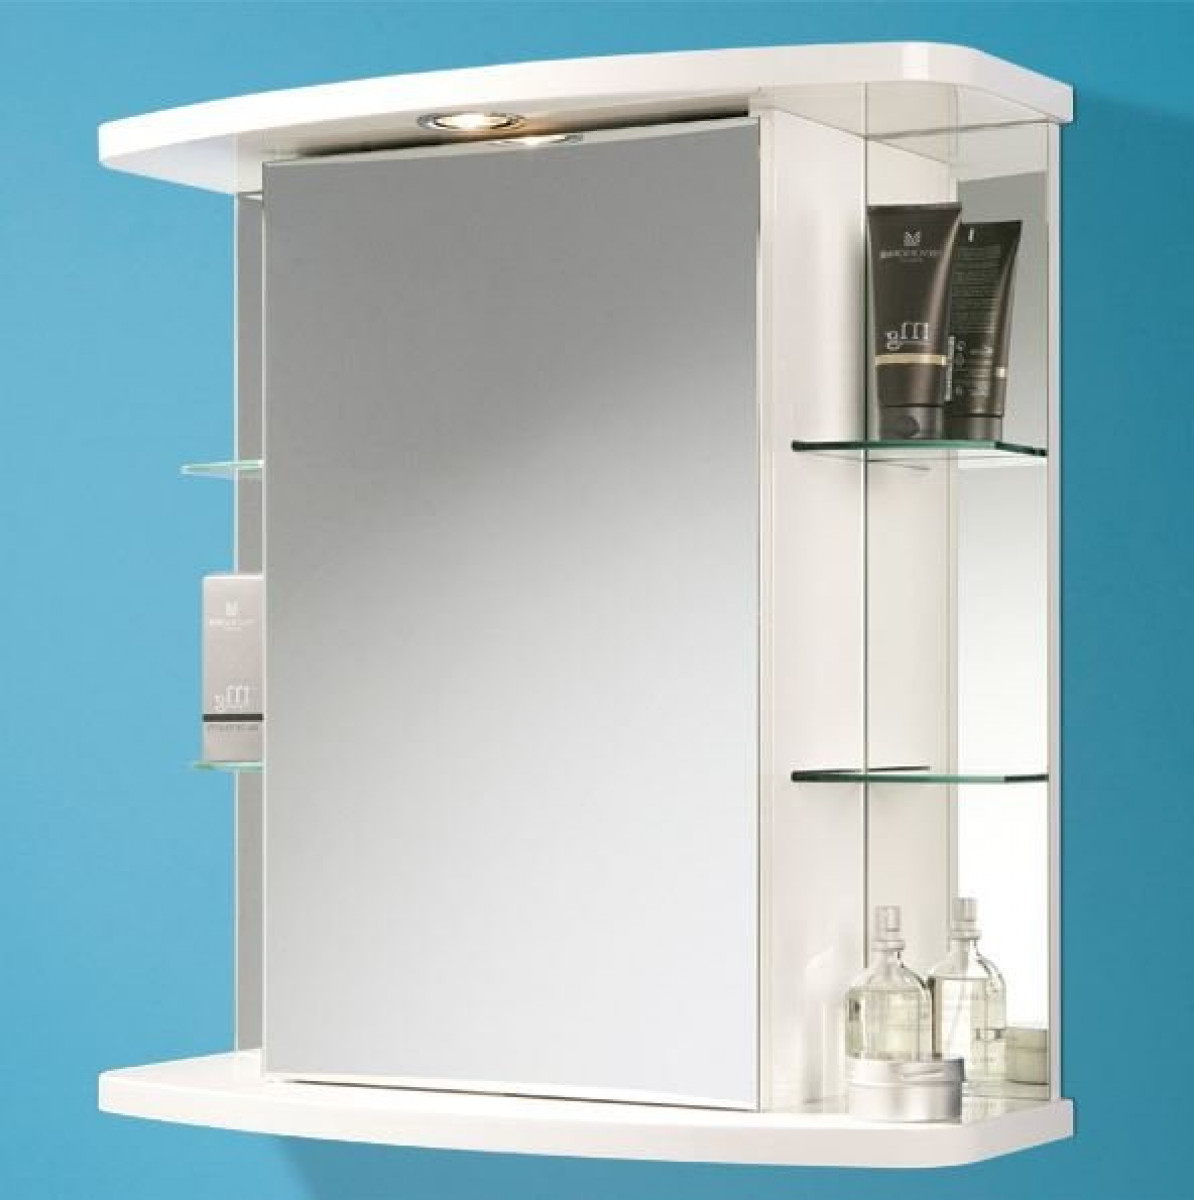 illuminated bathroom cabinets with shaver socket hib vera illuminated bathroom cabinet with shaver socket 17771